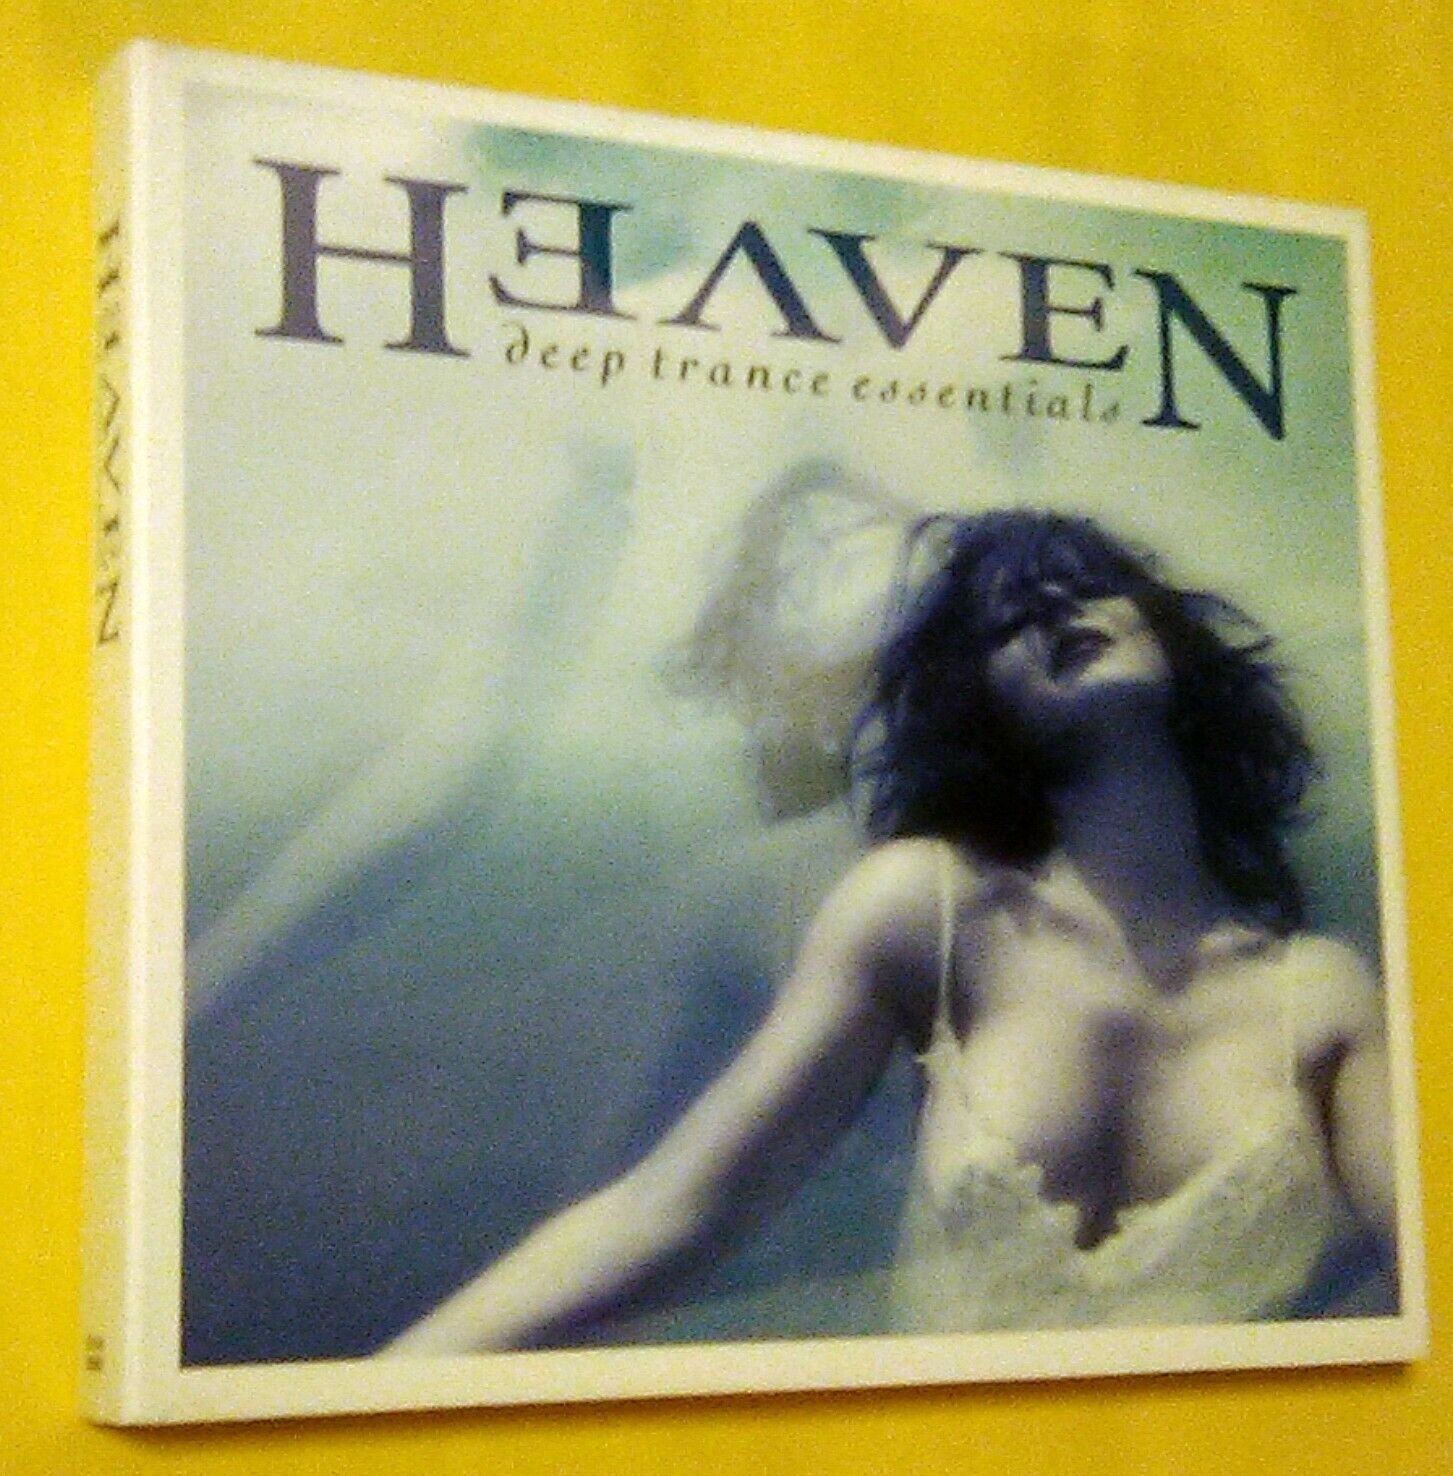 Heaven - Deep Trance Essentials 2 CD 2003 N.E.W.S. Import  - $11.99